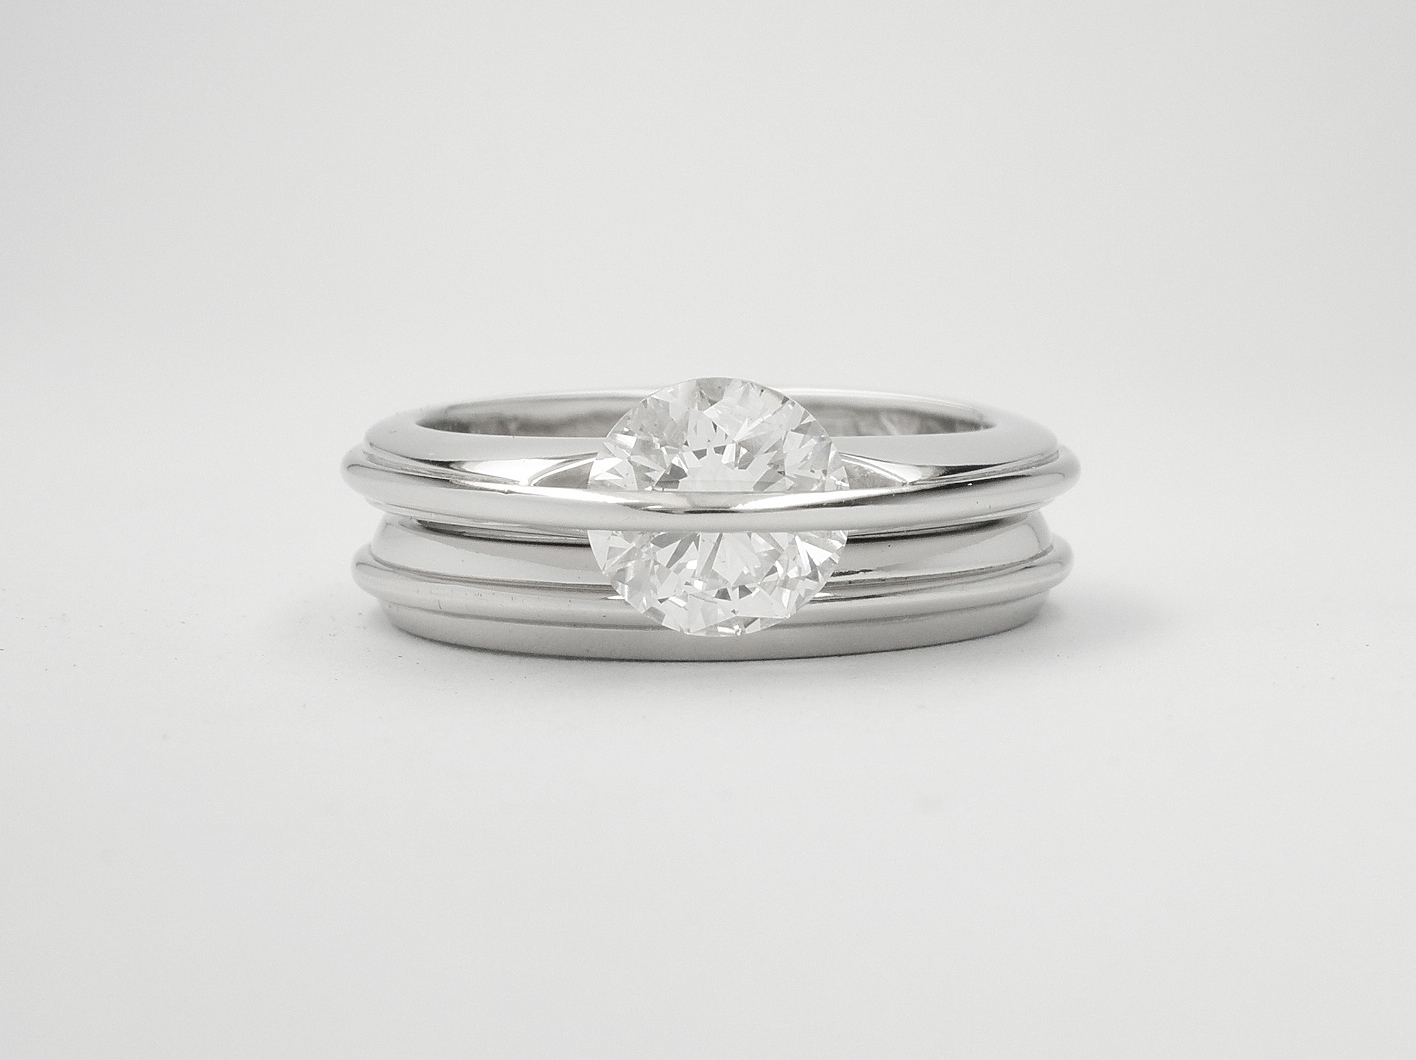 Platinum wedding ring with applied raised wire to match single stone 'Lunar' engagement ring.